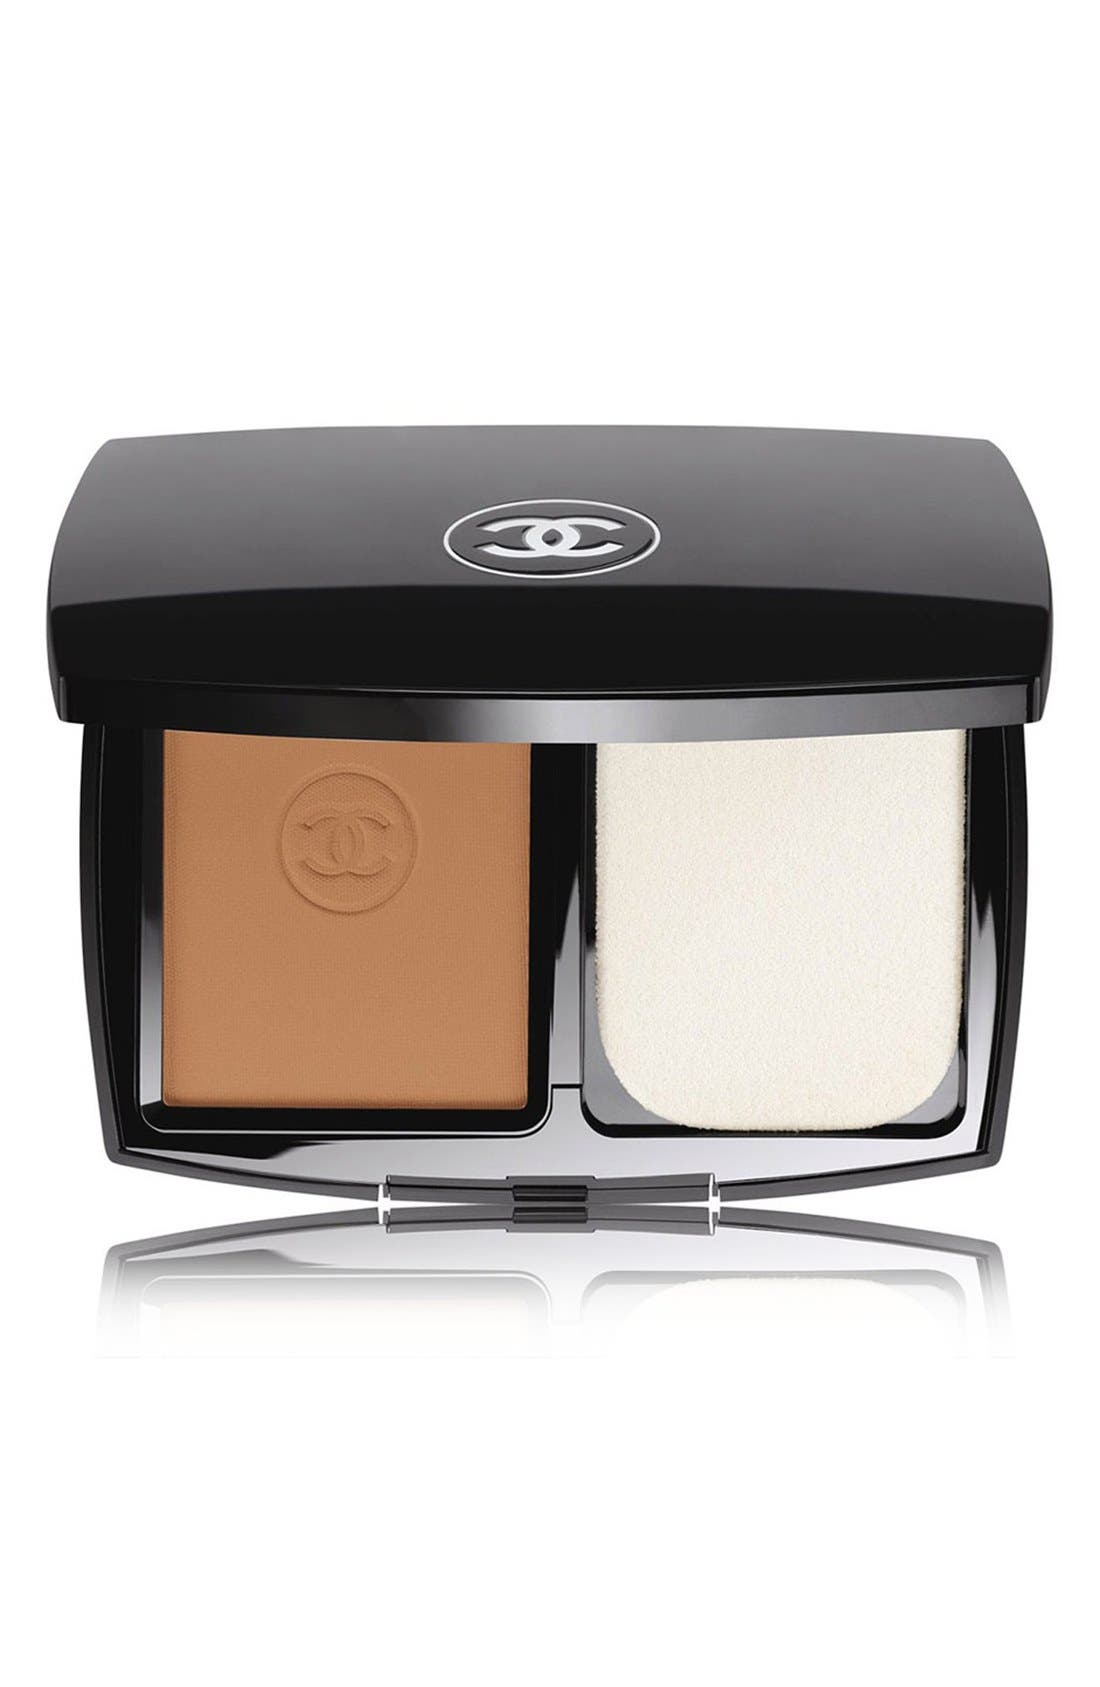 LE TEINT ULTRA TENUE<br />Ultrawear Flawless Compact Foundation Broad Spectrum SPF 15 Sunscreen, Main, color, 91 CARAMEL